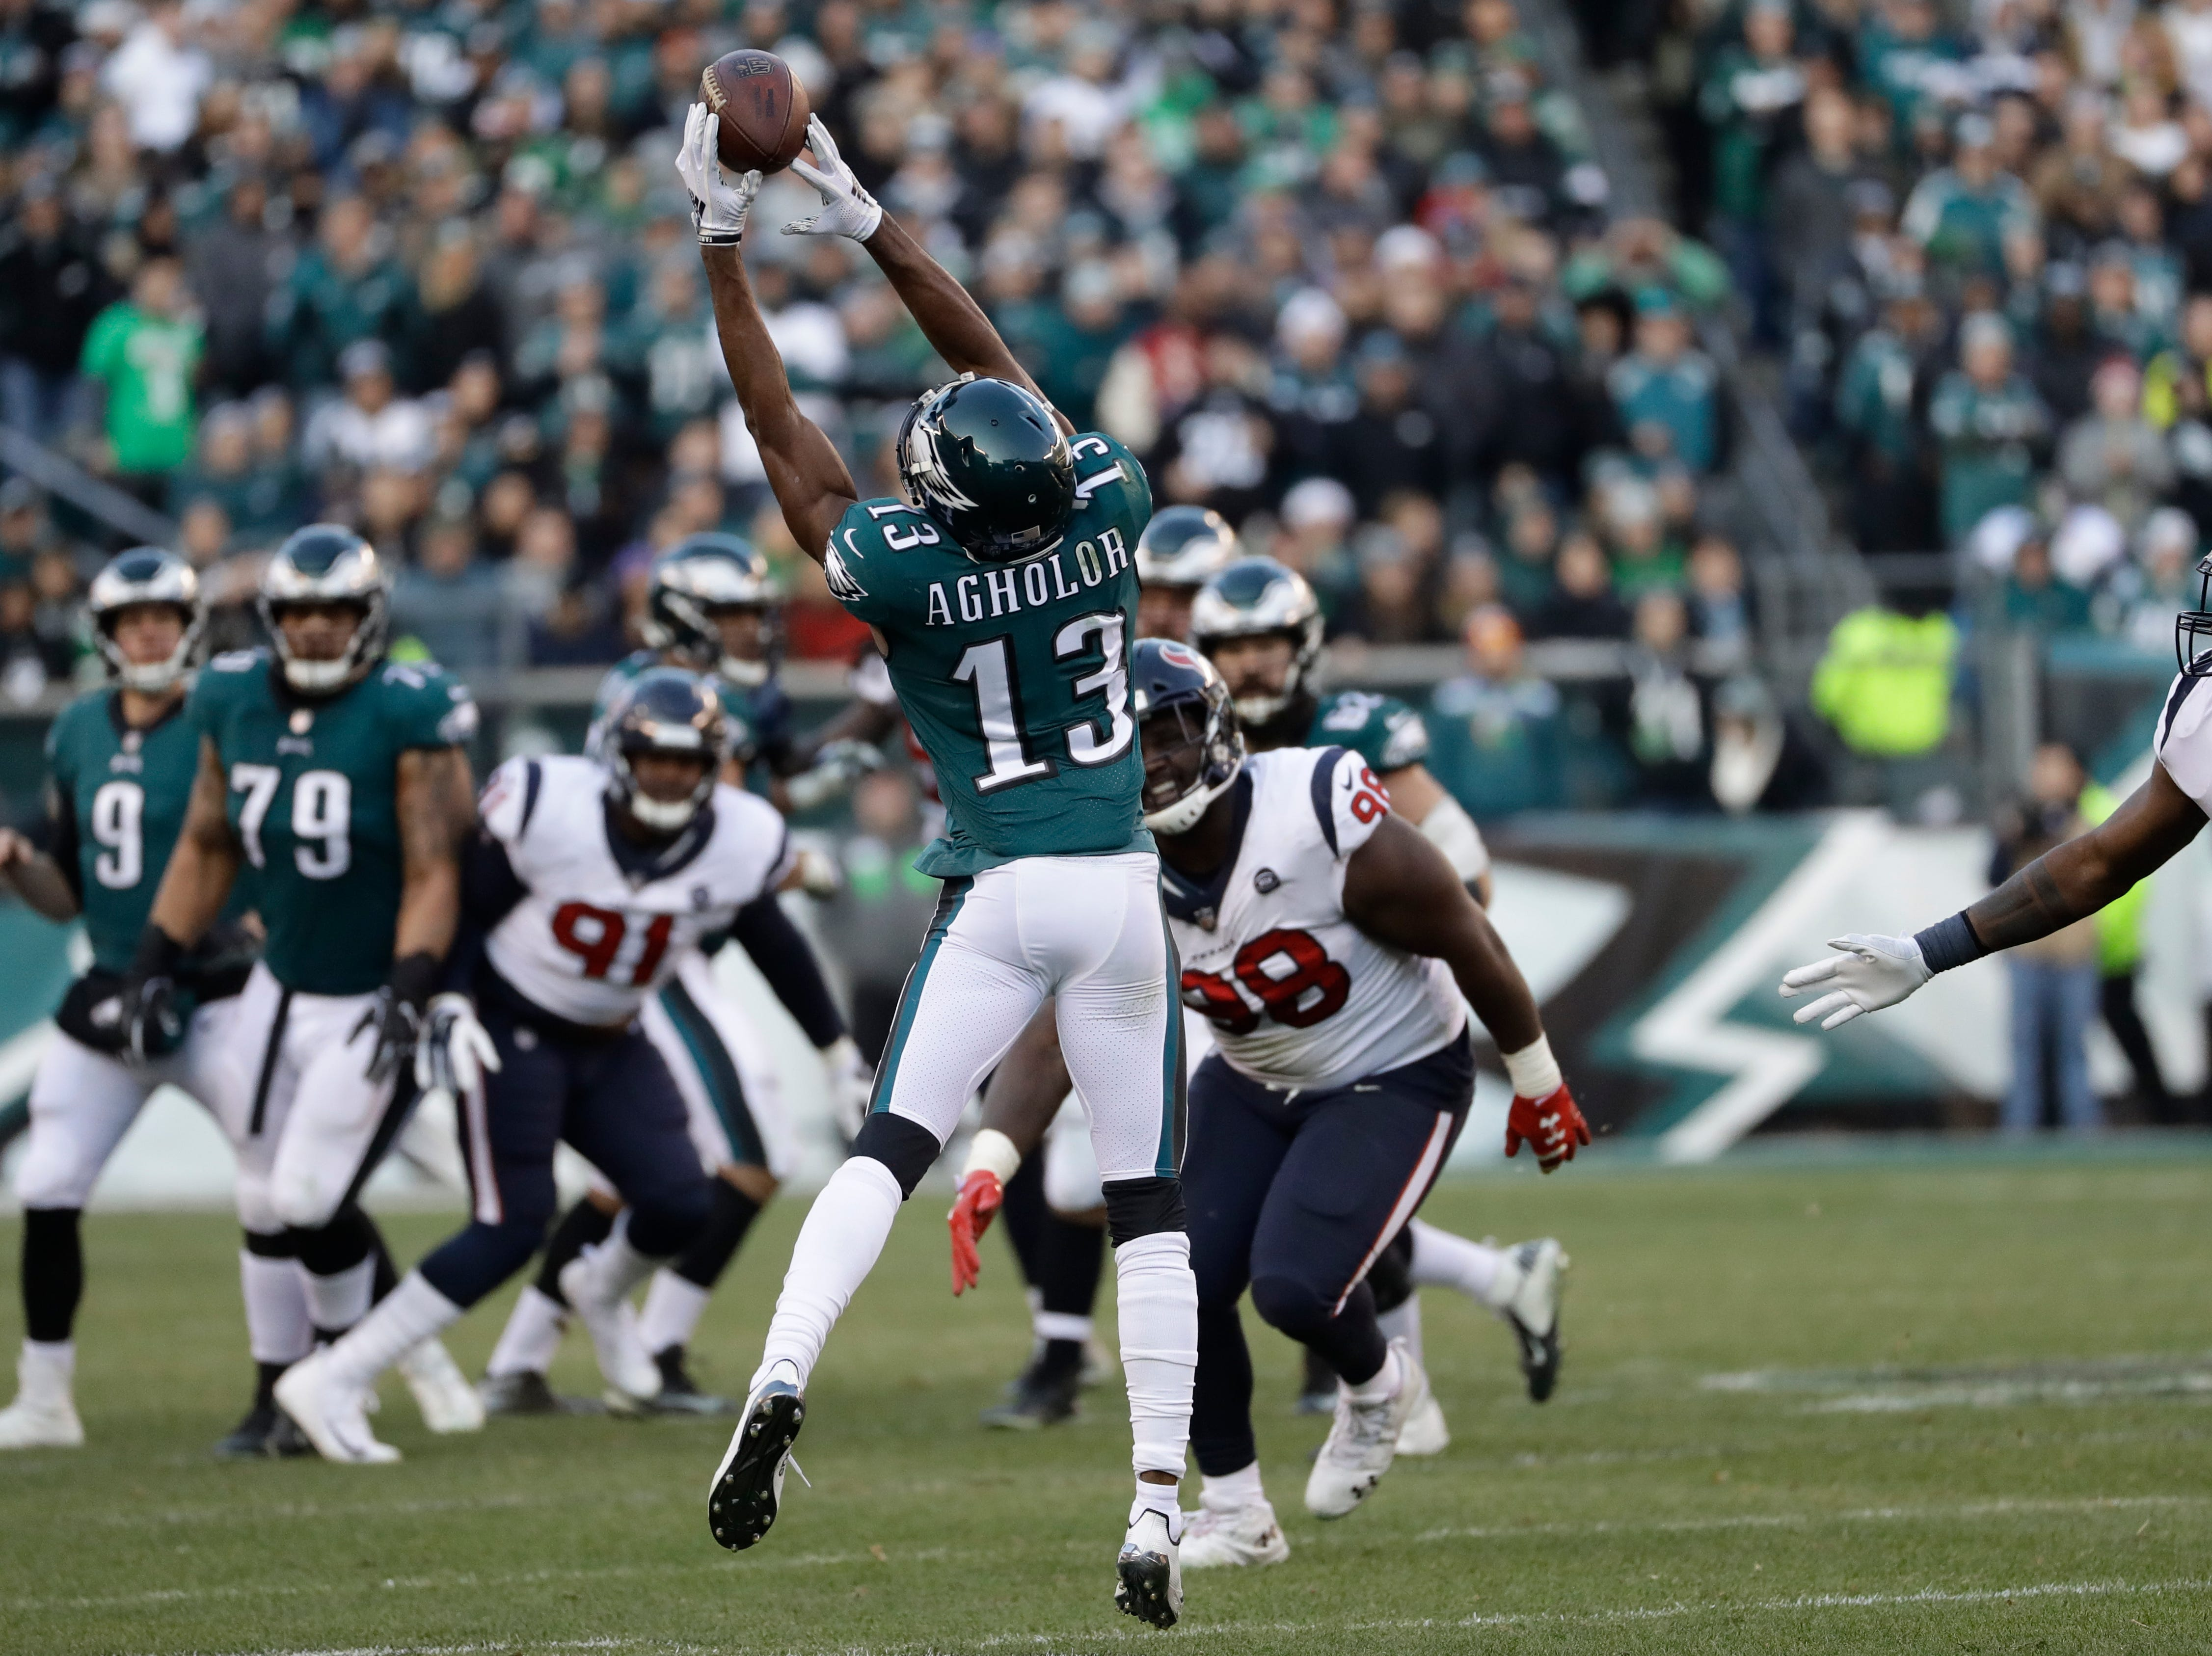 Philadelphia Eagles' Nelson Agholor catches a pass during the second half of an NFL football game against the Houston Texans, Sunday, Dec. 23, 2018, in Philadelphia. (AP Photo/Michael Perez)